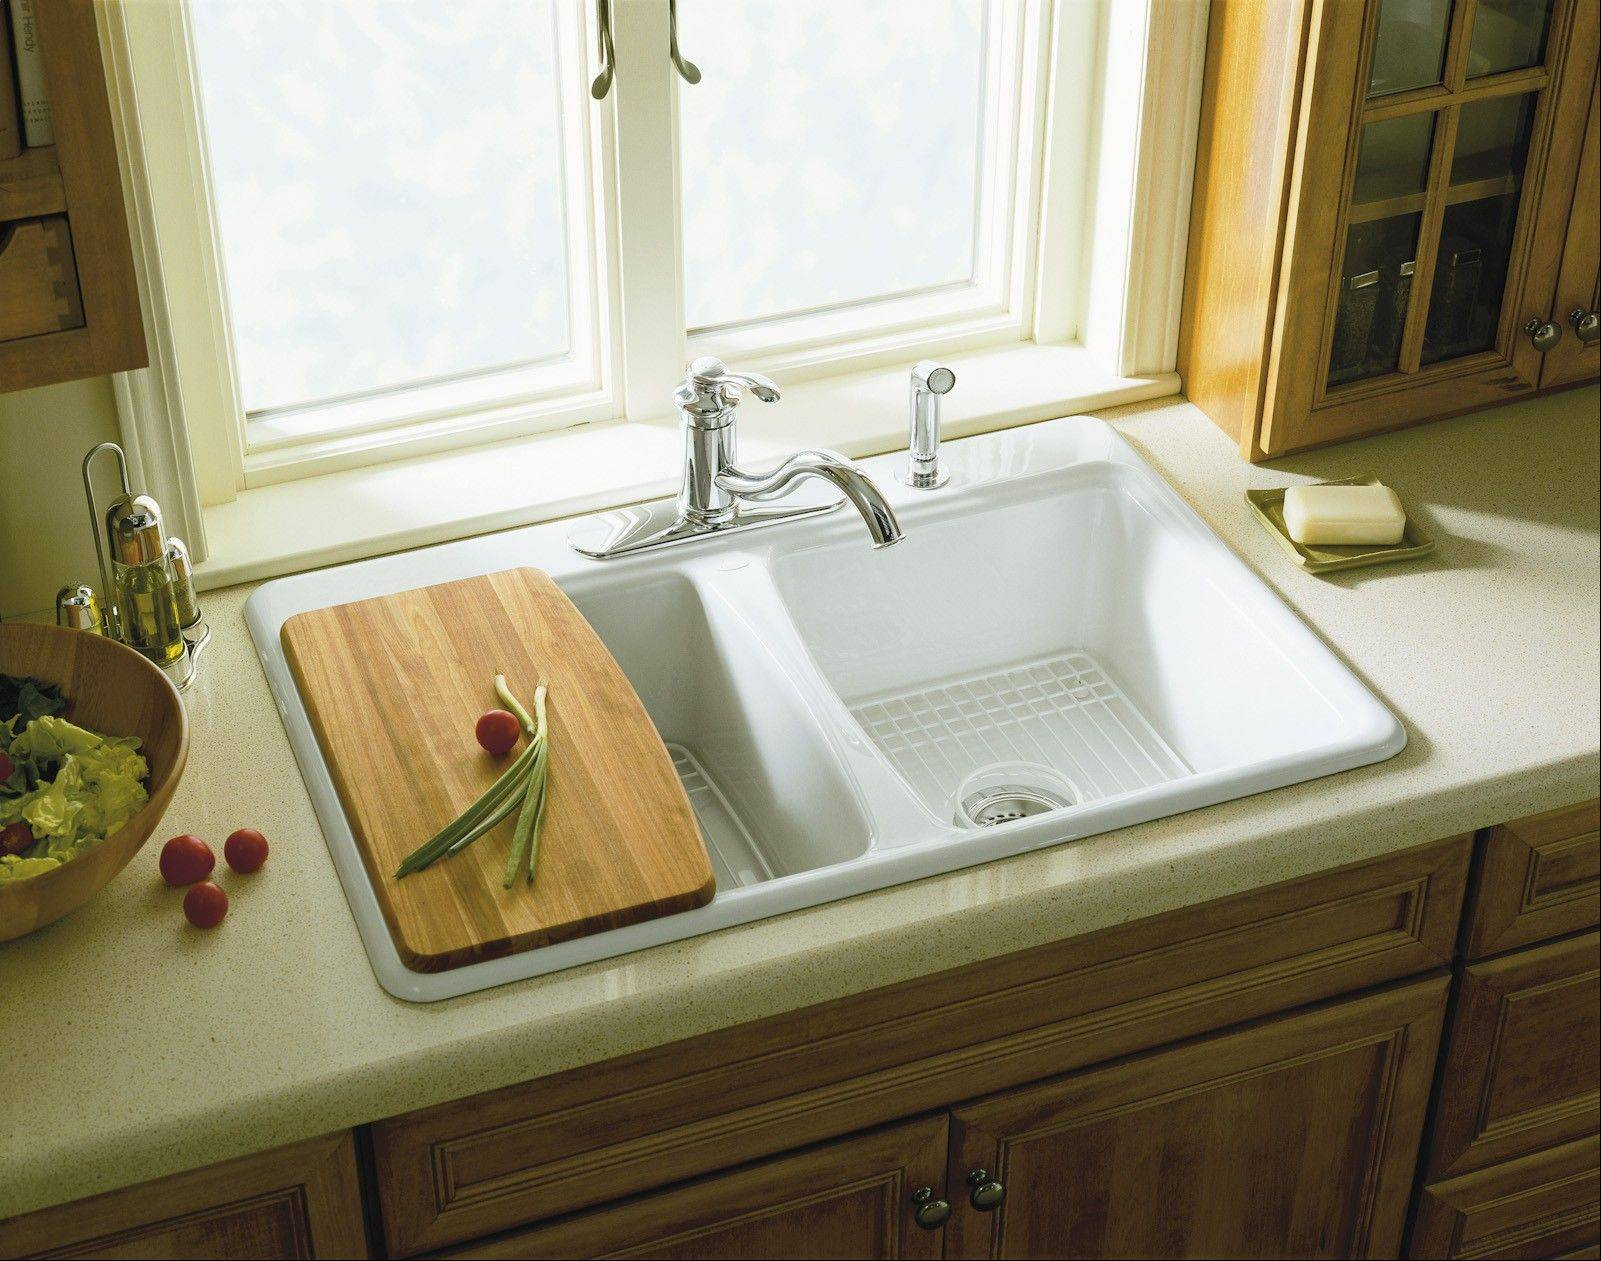 Buy a kitchen sink from a manufacturer that offers custom-made accessories.